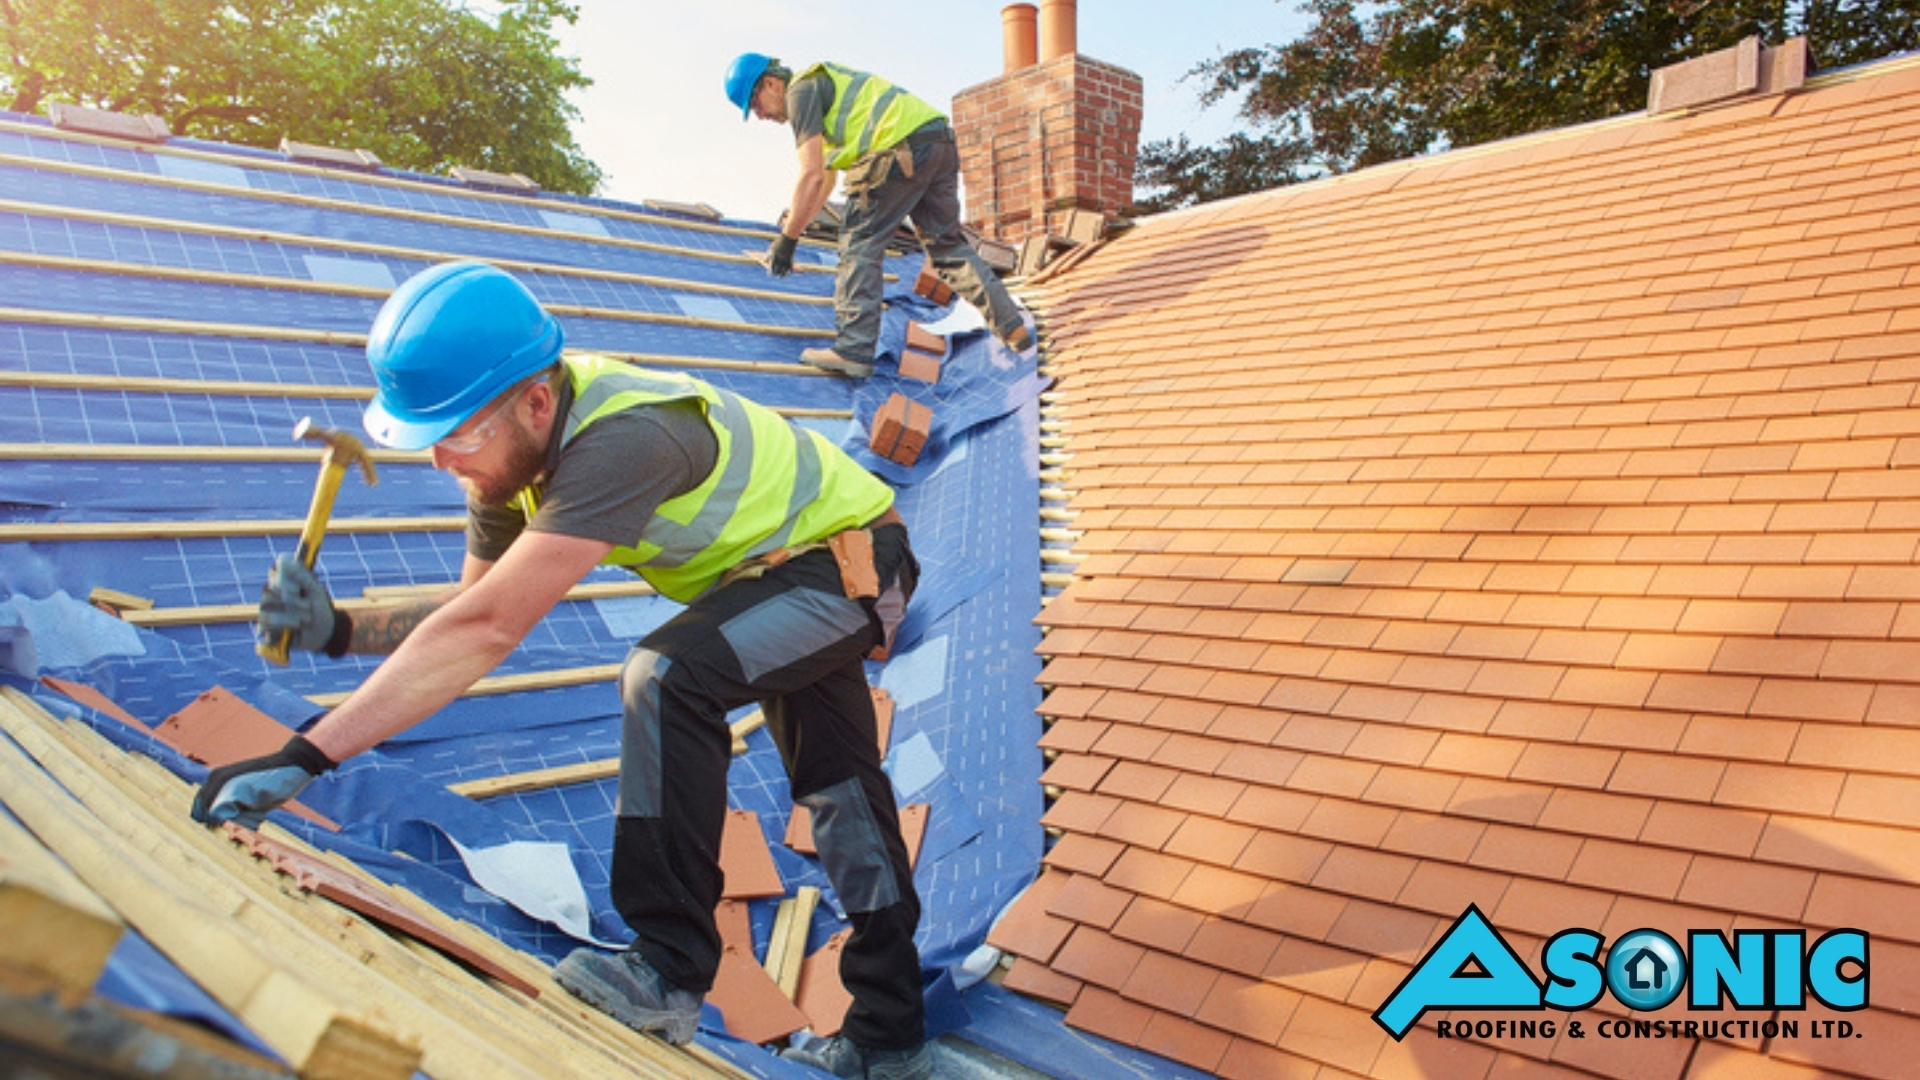 In Need Of A New Roof? Read Our Top 3 Tips When Choosing A Local Roofing Company